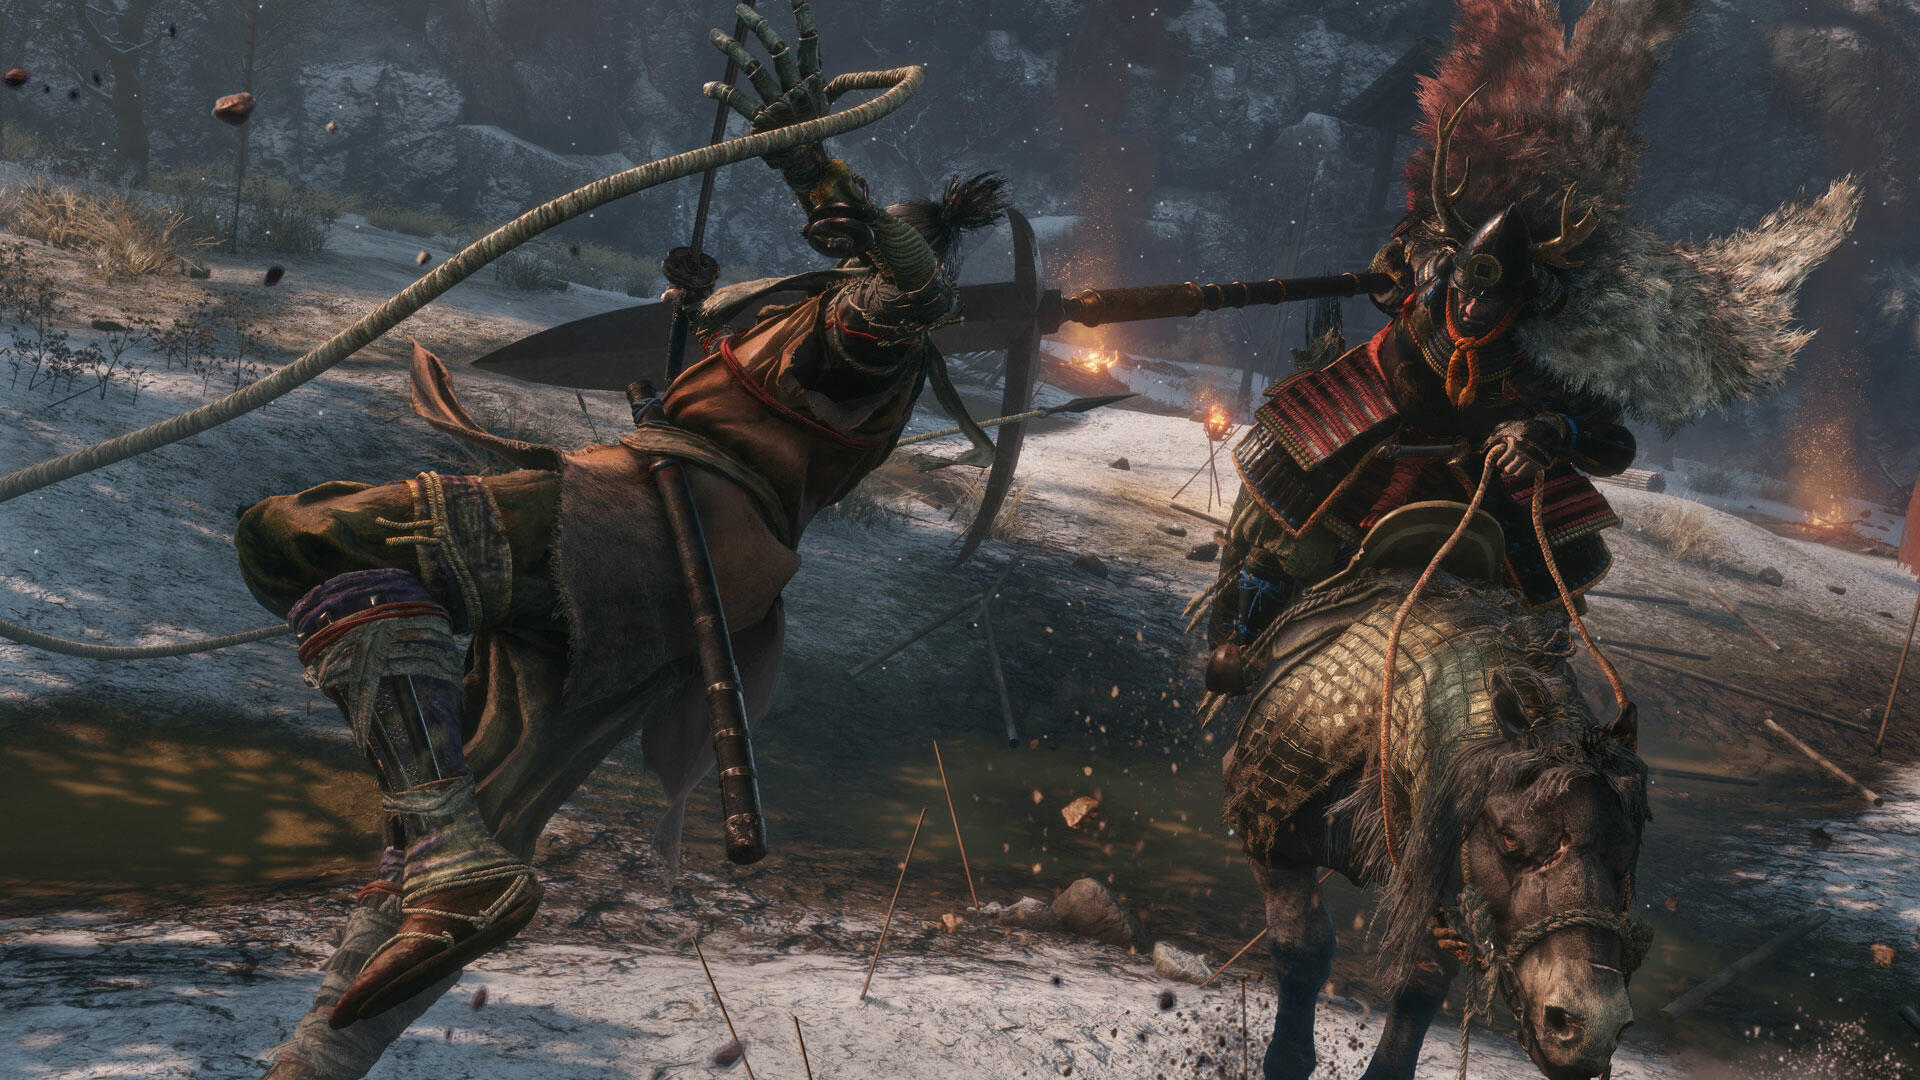 Awesome Games Done Quick 2020.The Lineup For Awesome Games Done Quick 2020 Includes Sekiro